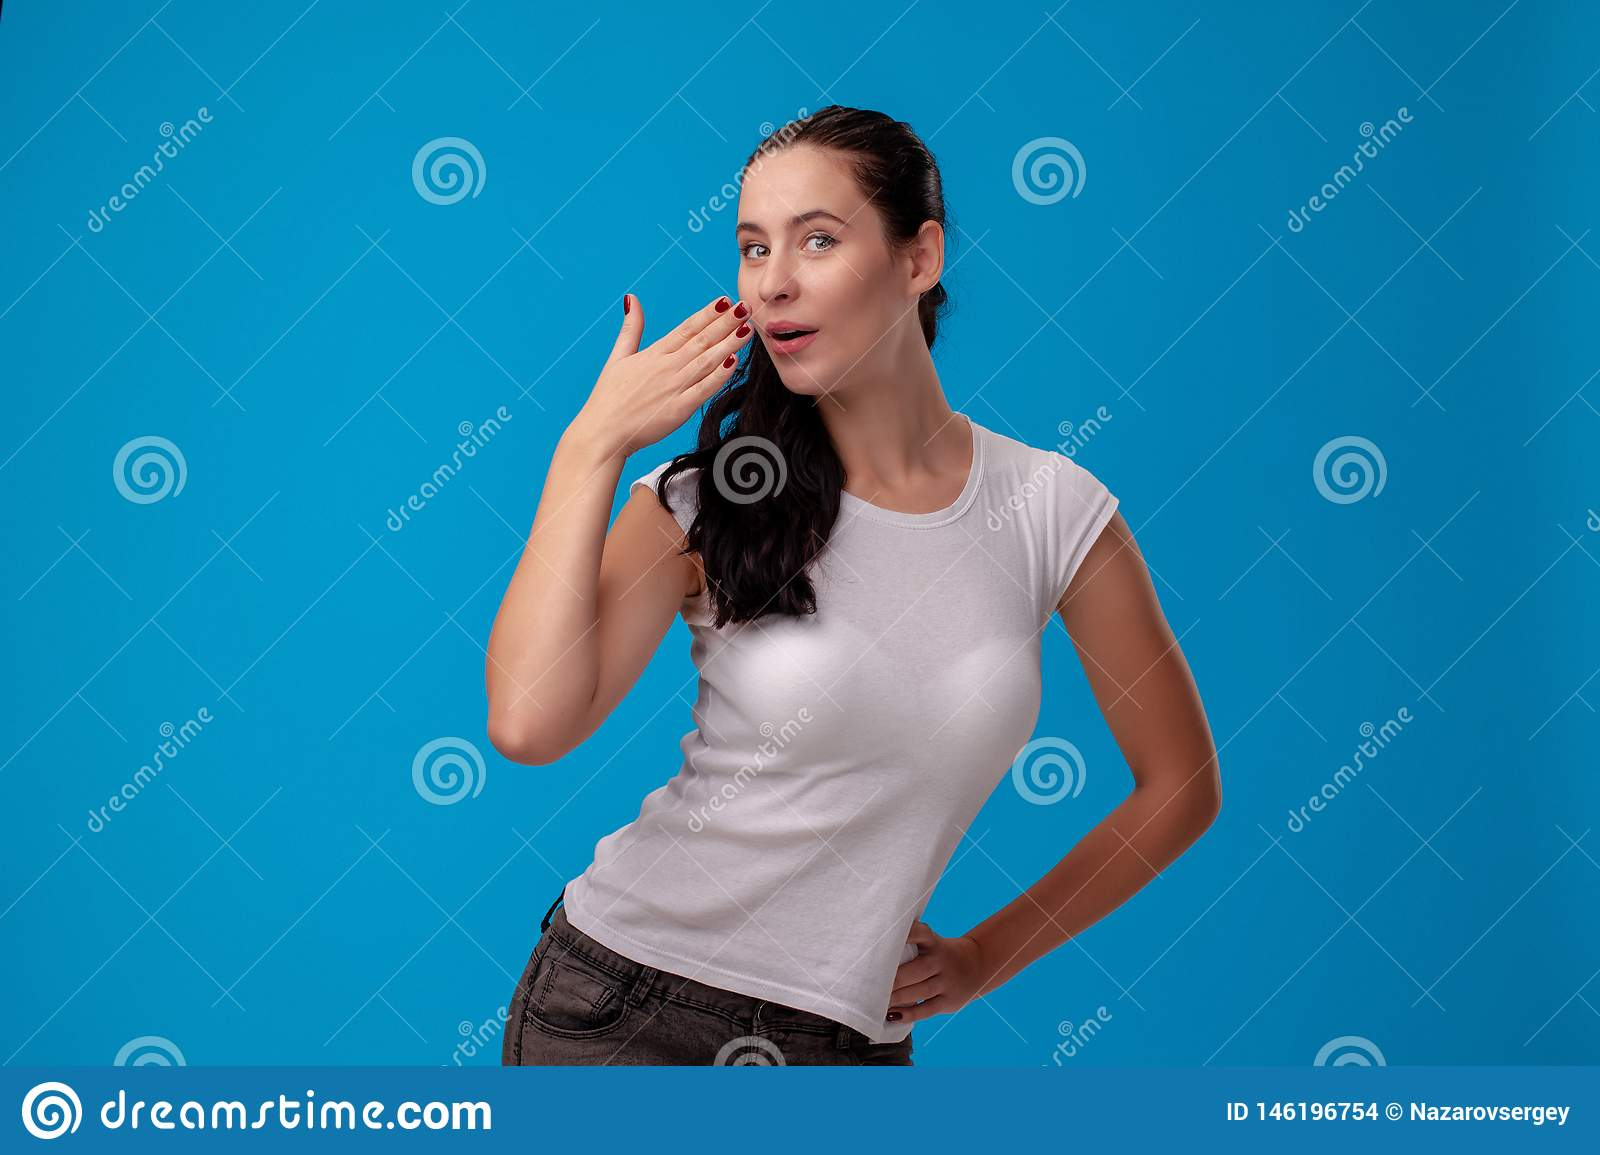 Studio portrait of a young beautiful woman in a white t-shirt against a blue wall background. People sincere emotions.